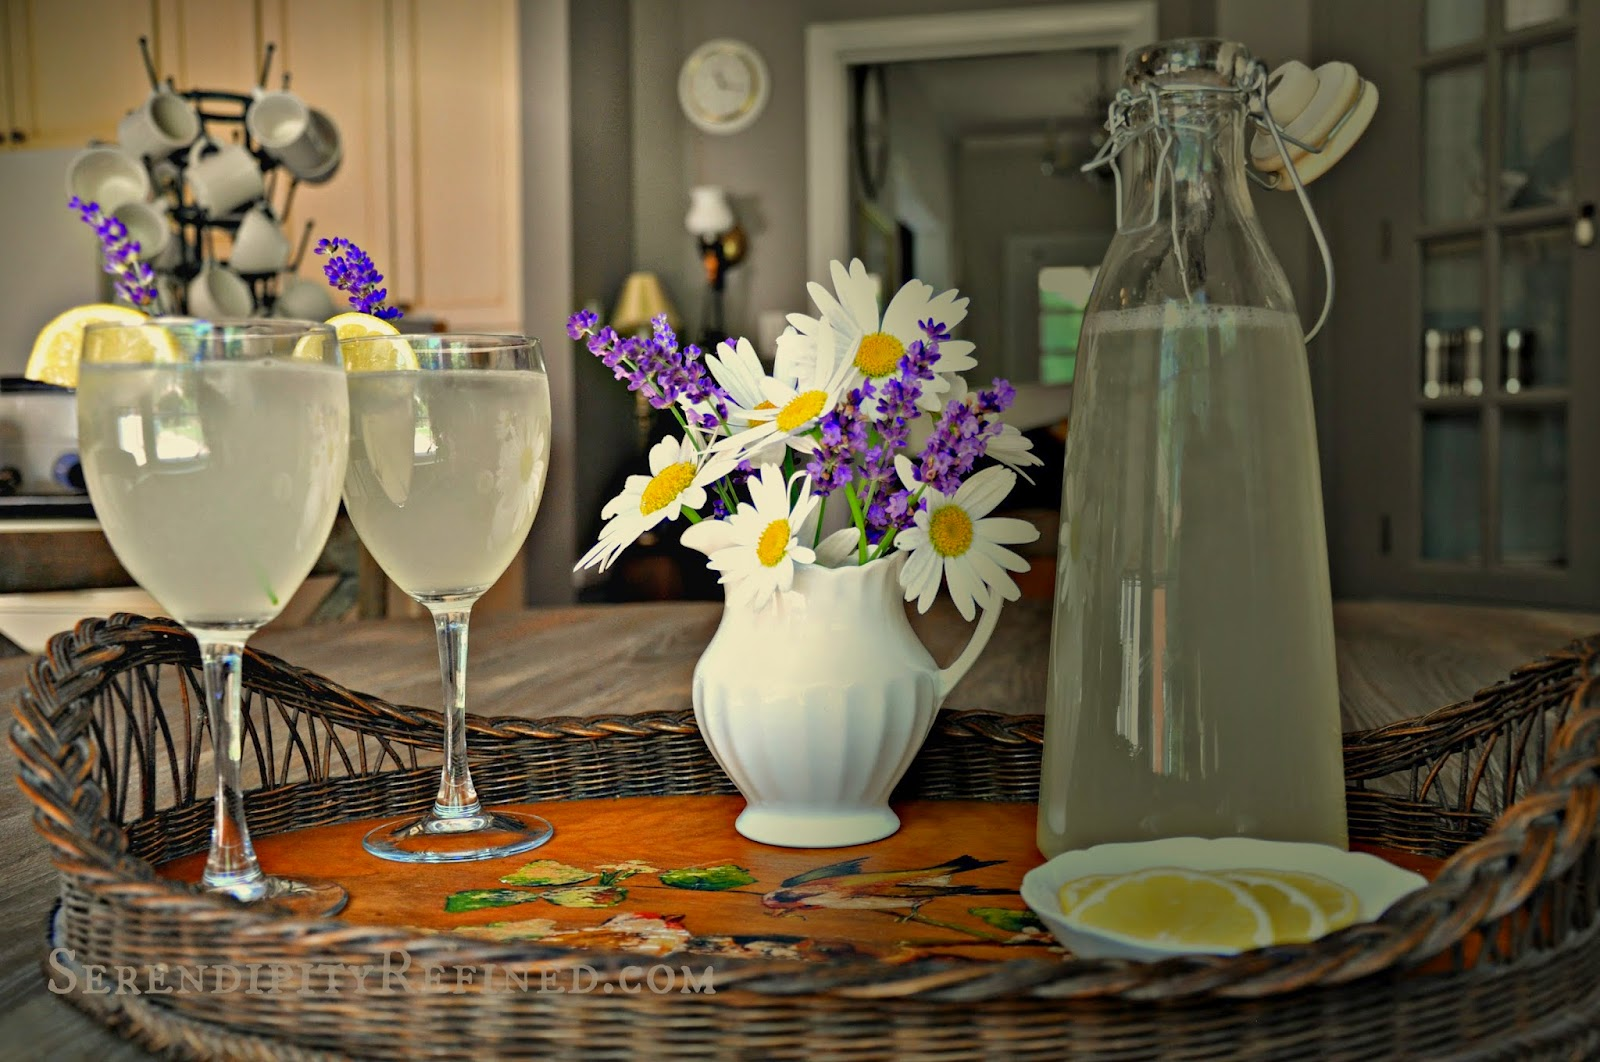 Serendipity Refined Blog: How to Make Lavender-Infused ...